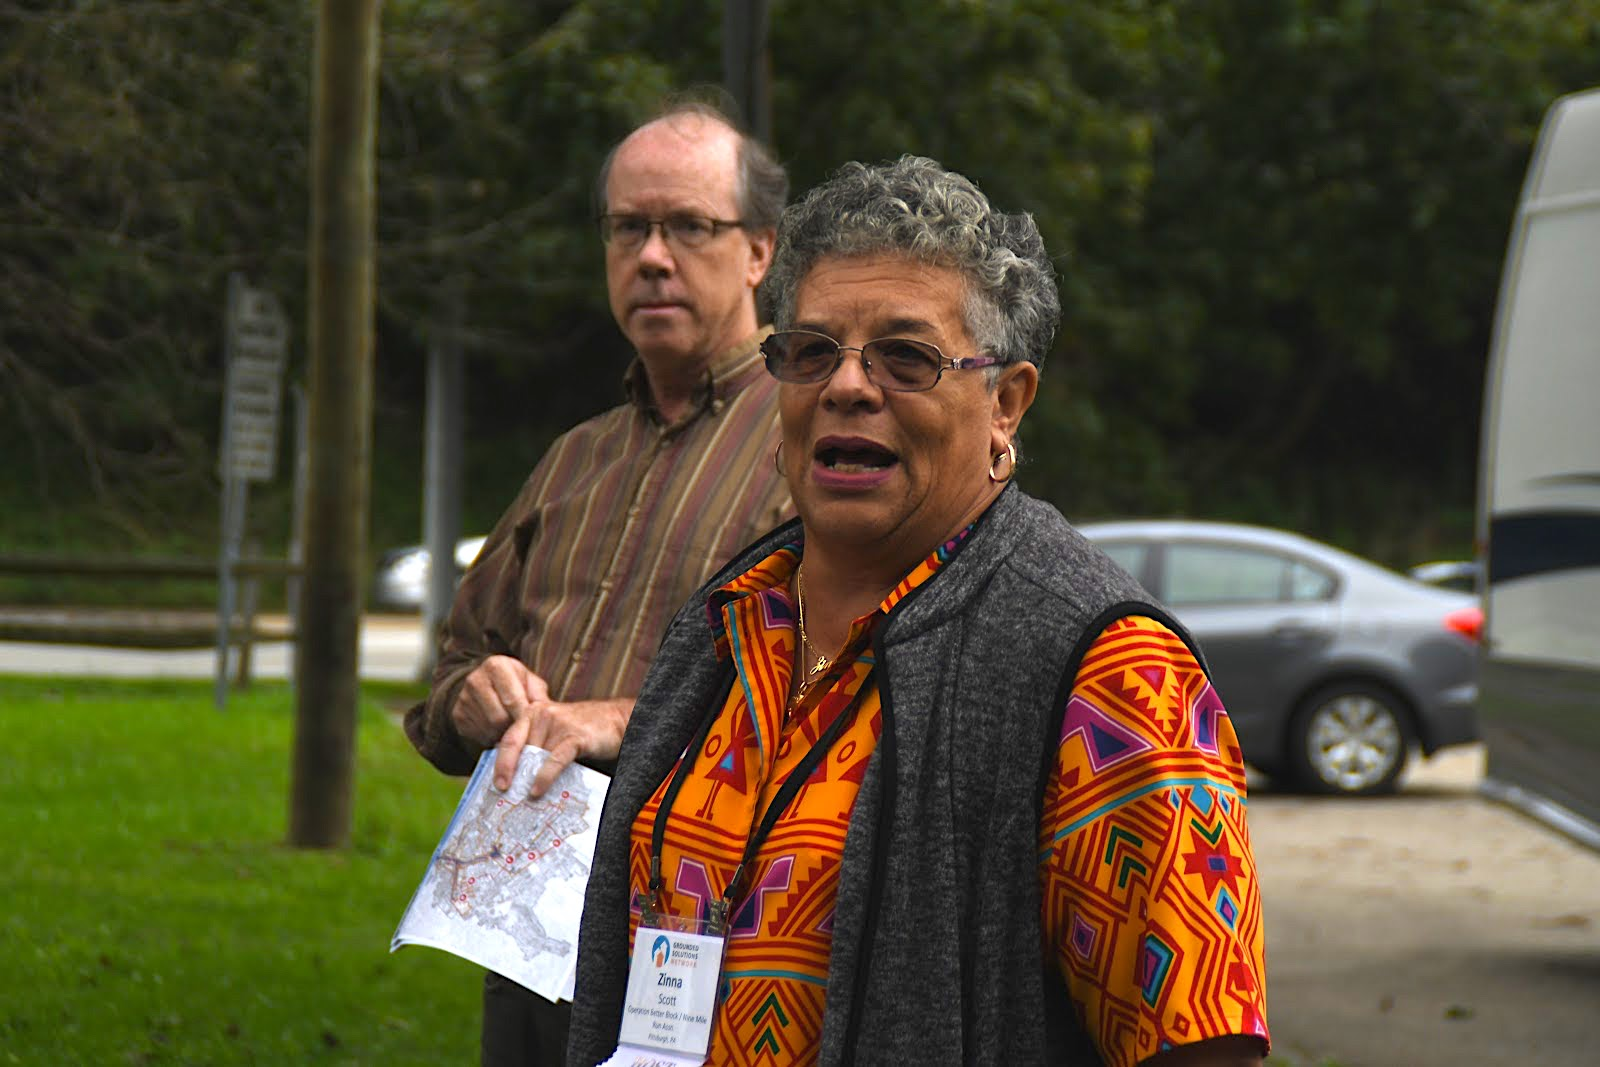 Zinna Scott and John Stephens welcome ALCOSAN staff and community tour goers at the Zone Five Police Station on Washington Boulevard